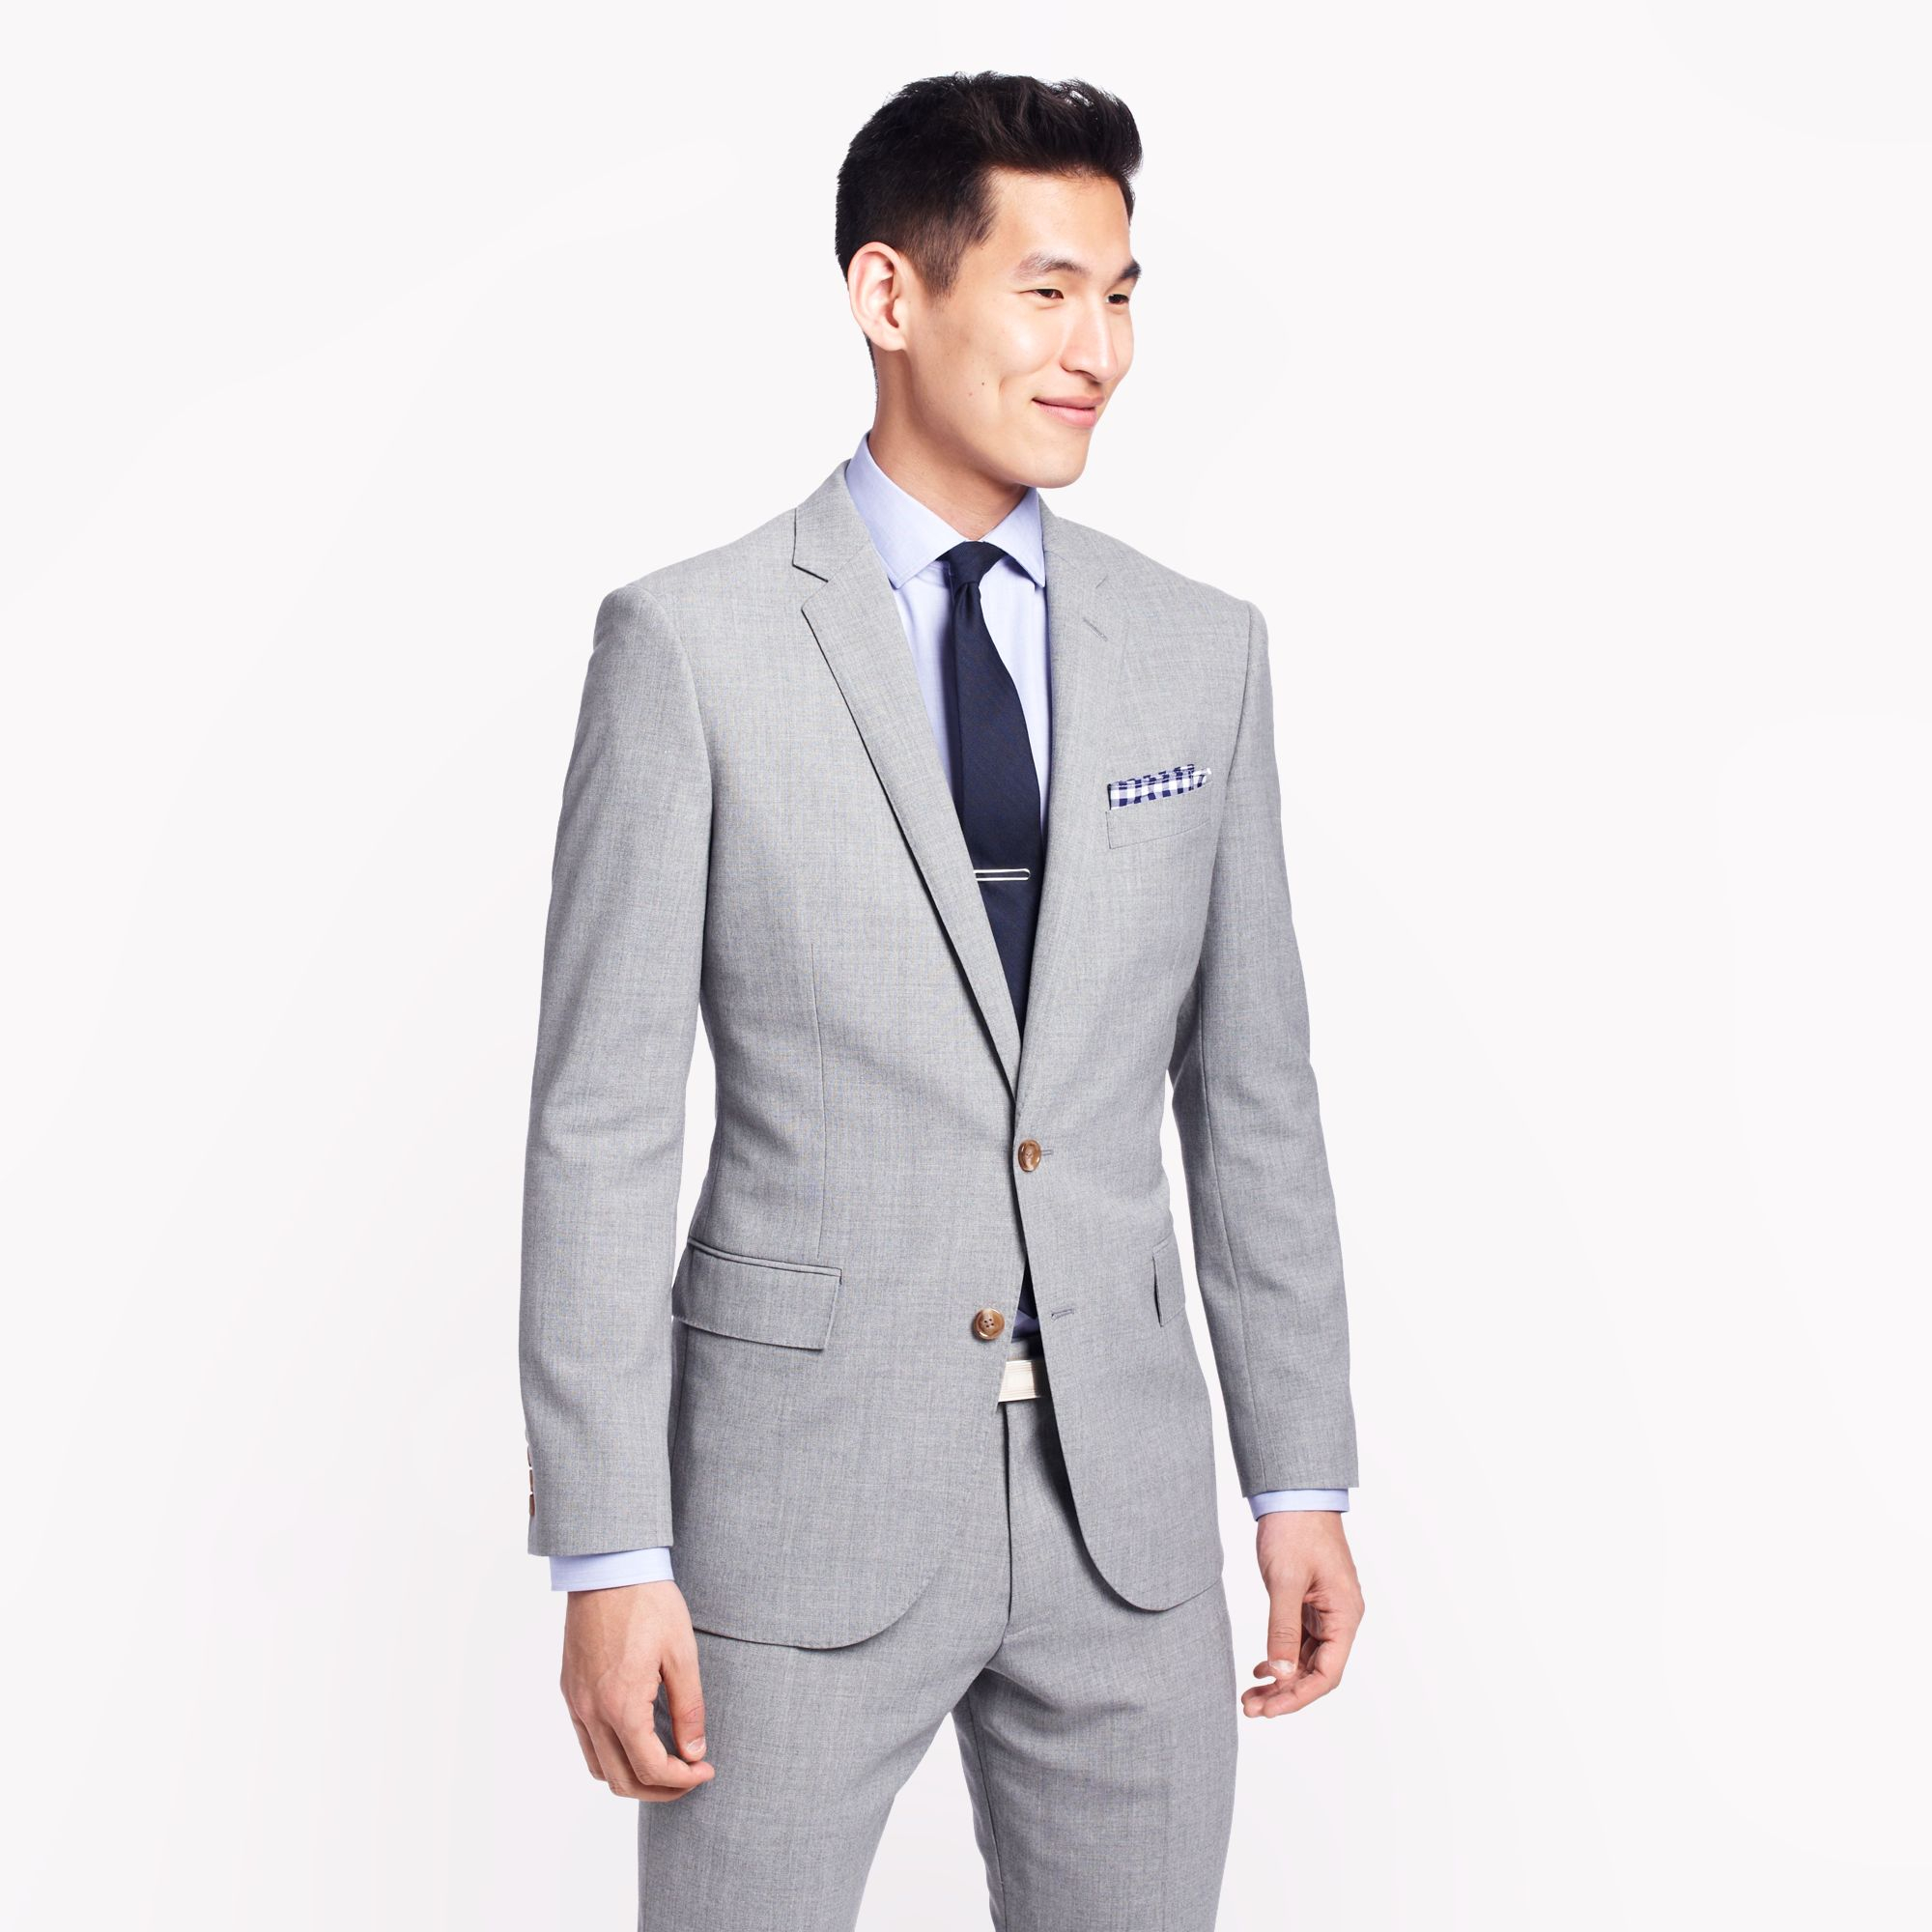 fa2ae1fec52519 J.Crew Ludlow Suit Jacket with Double Vent in Light Charcoal Italian ...